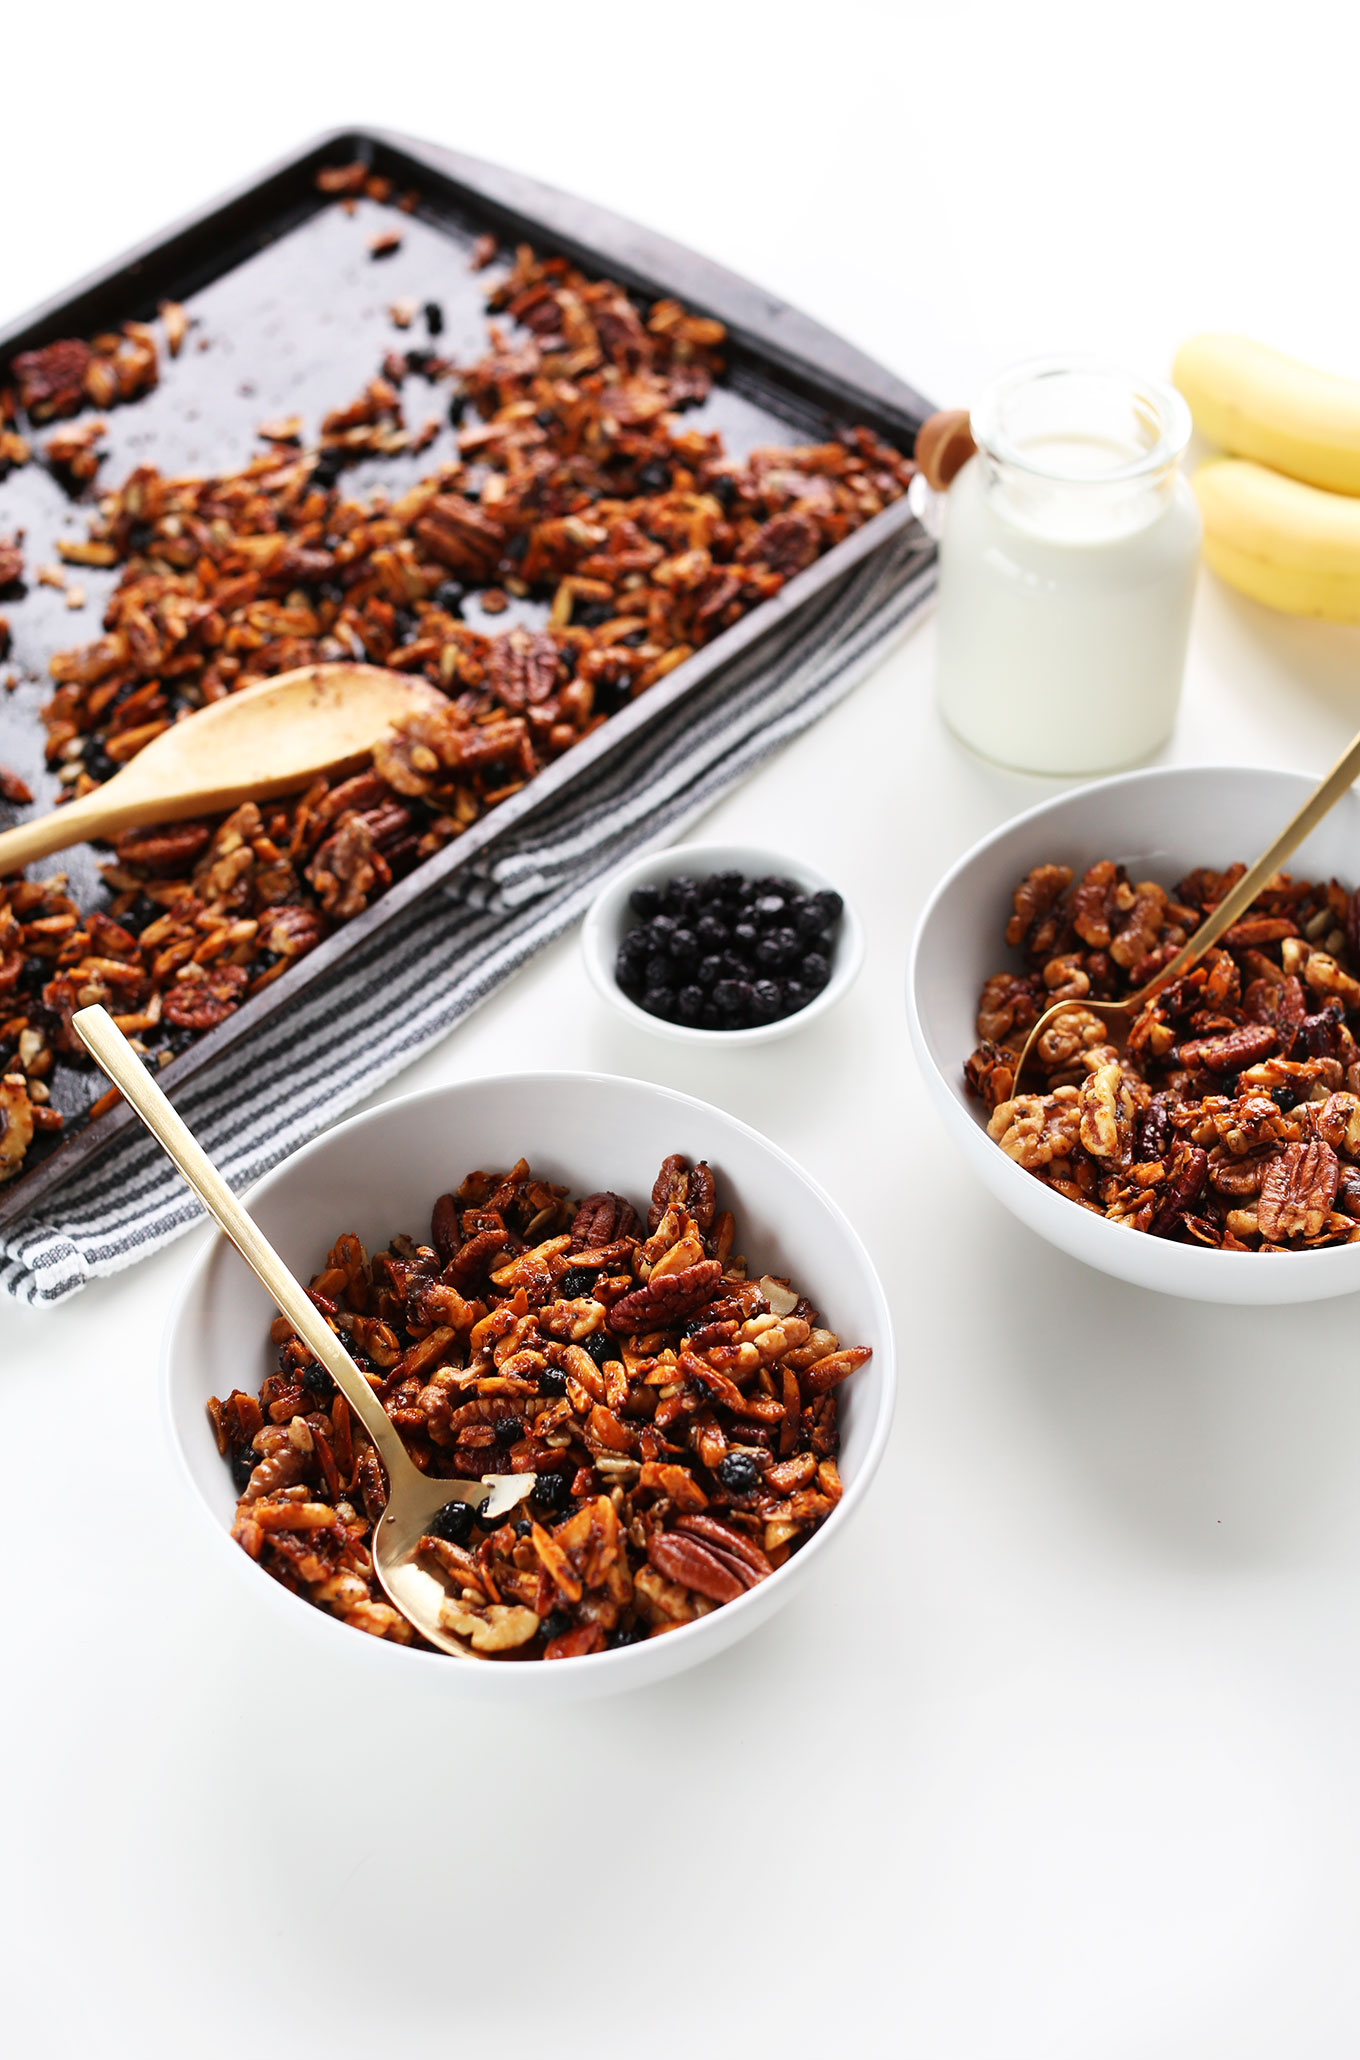 Bowls of our amazing Grain-Free Granola made with nuts, seeds, and coconut